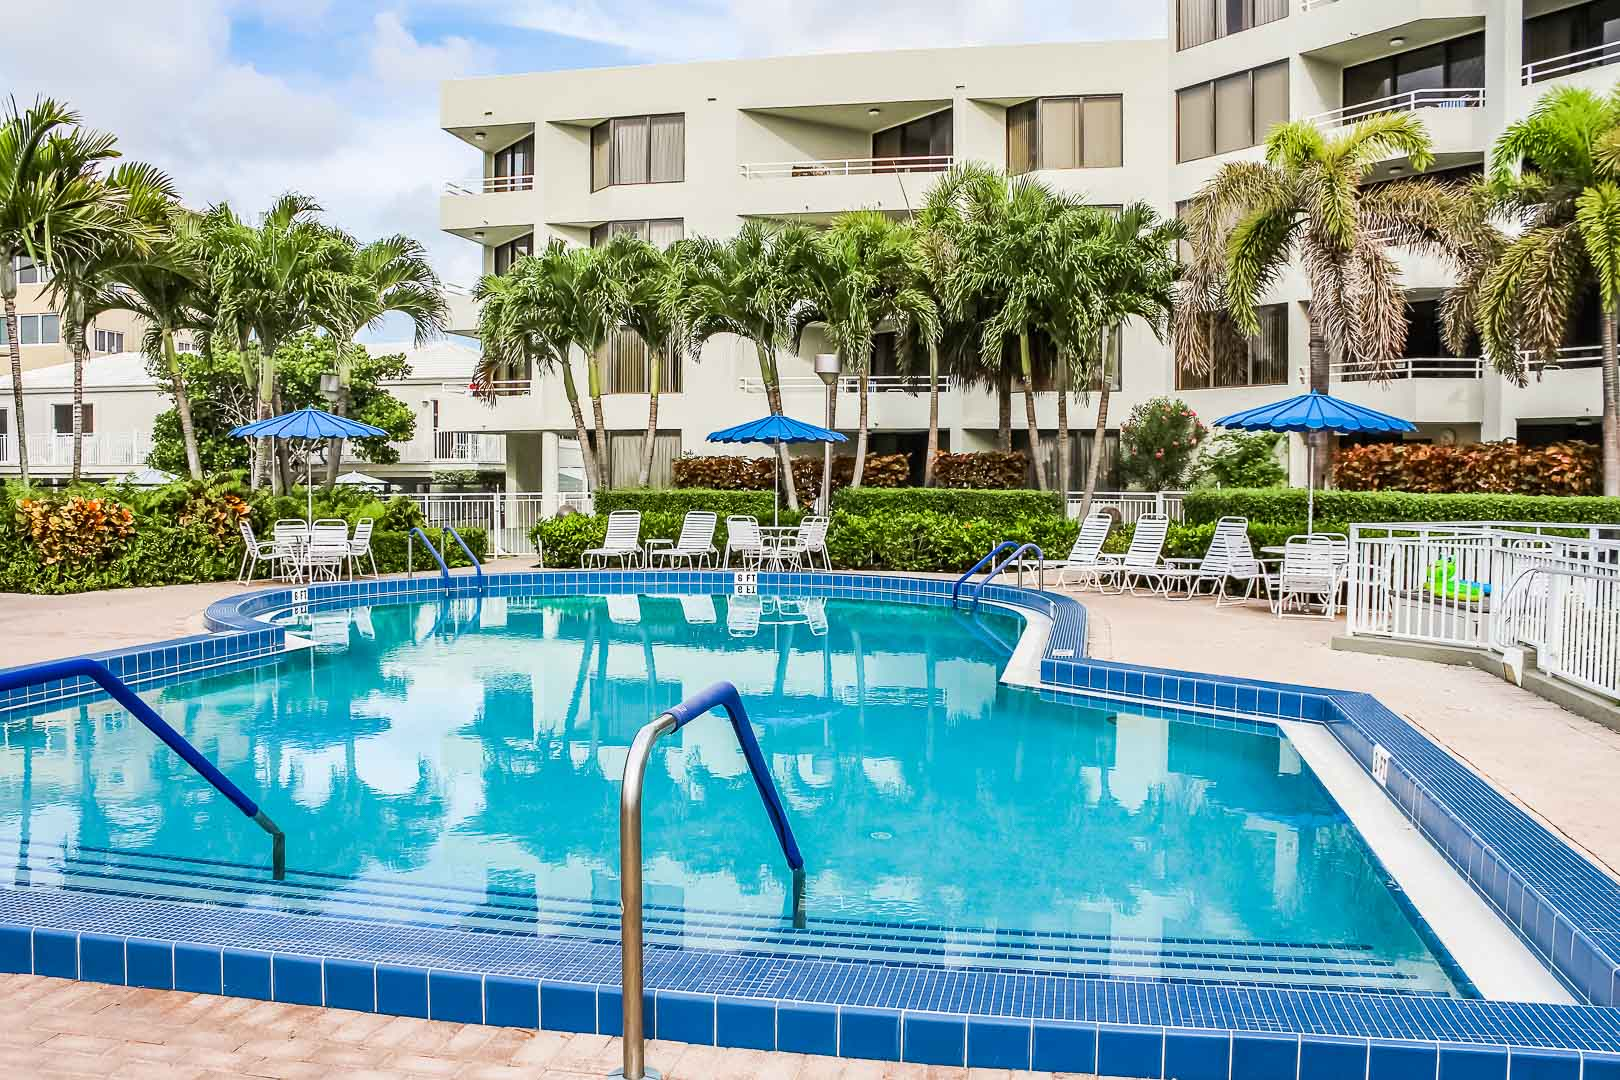 A relaxing pool at VRI's Berkshire by the Sea in Florida.